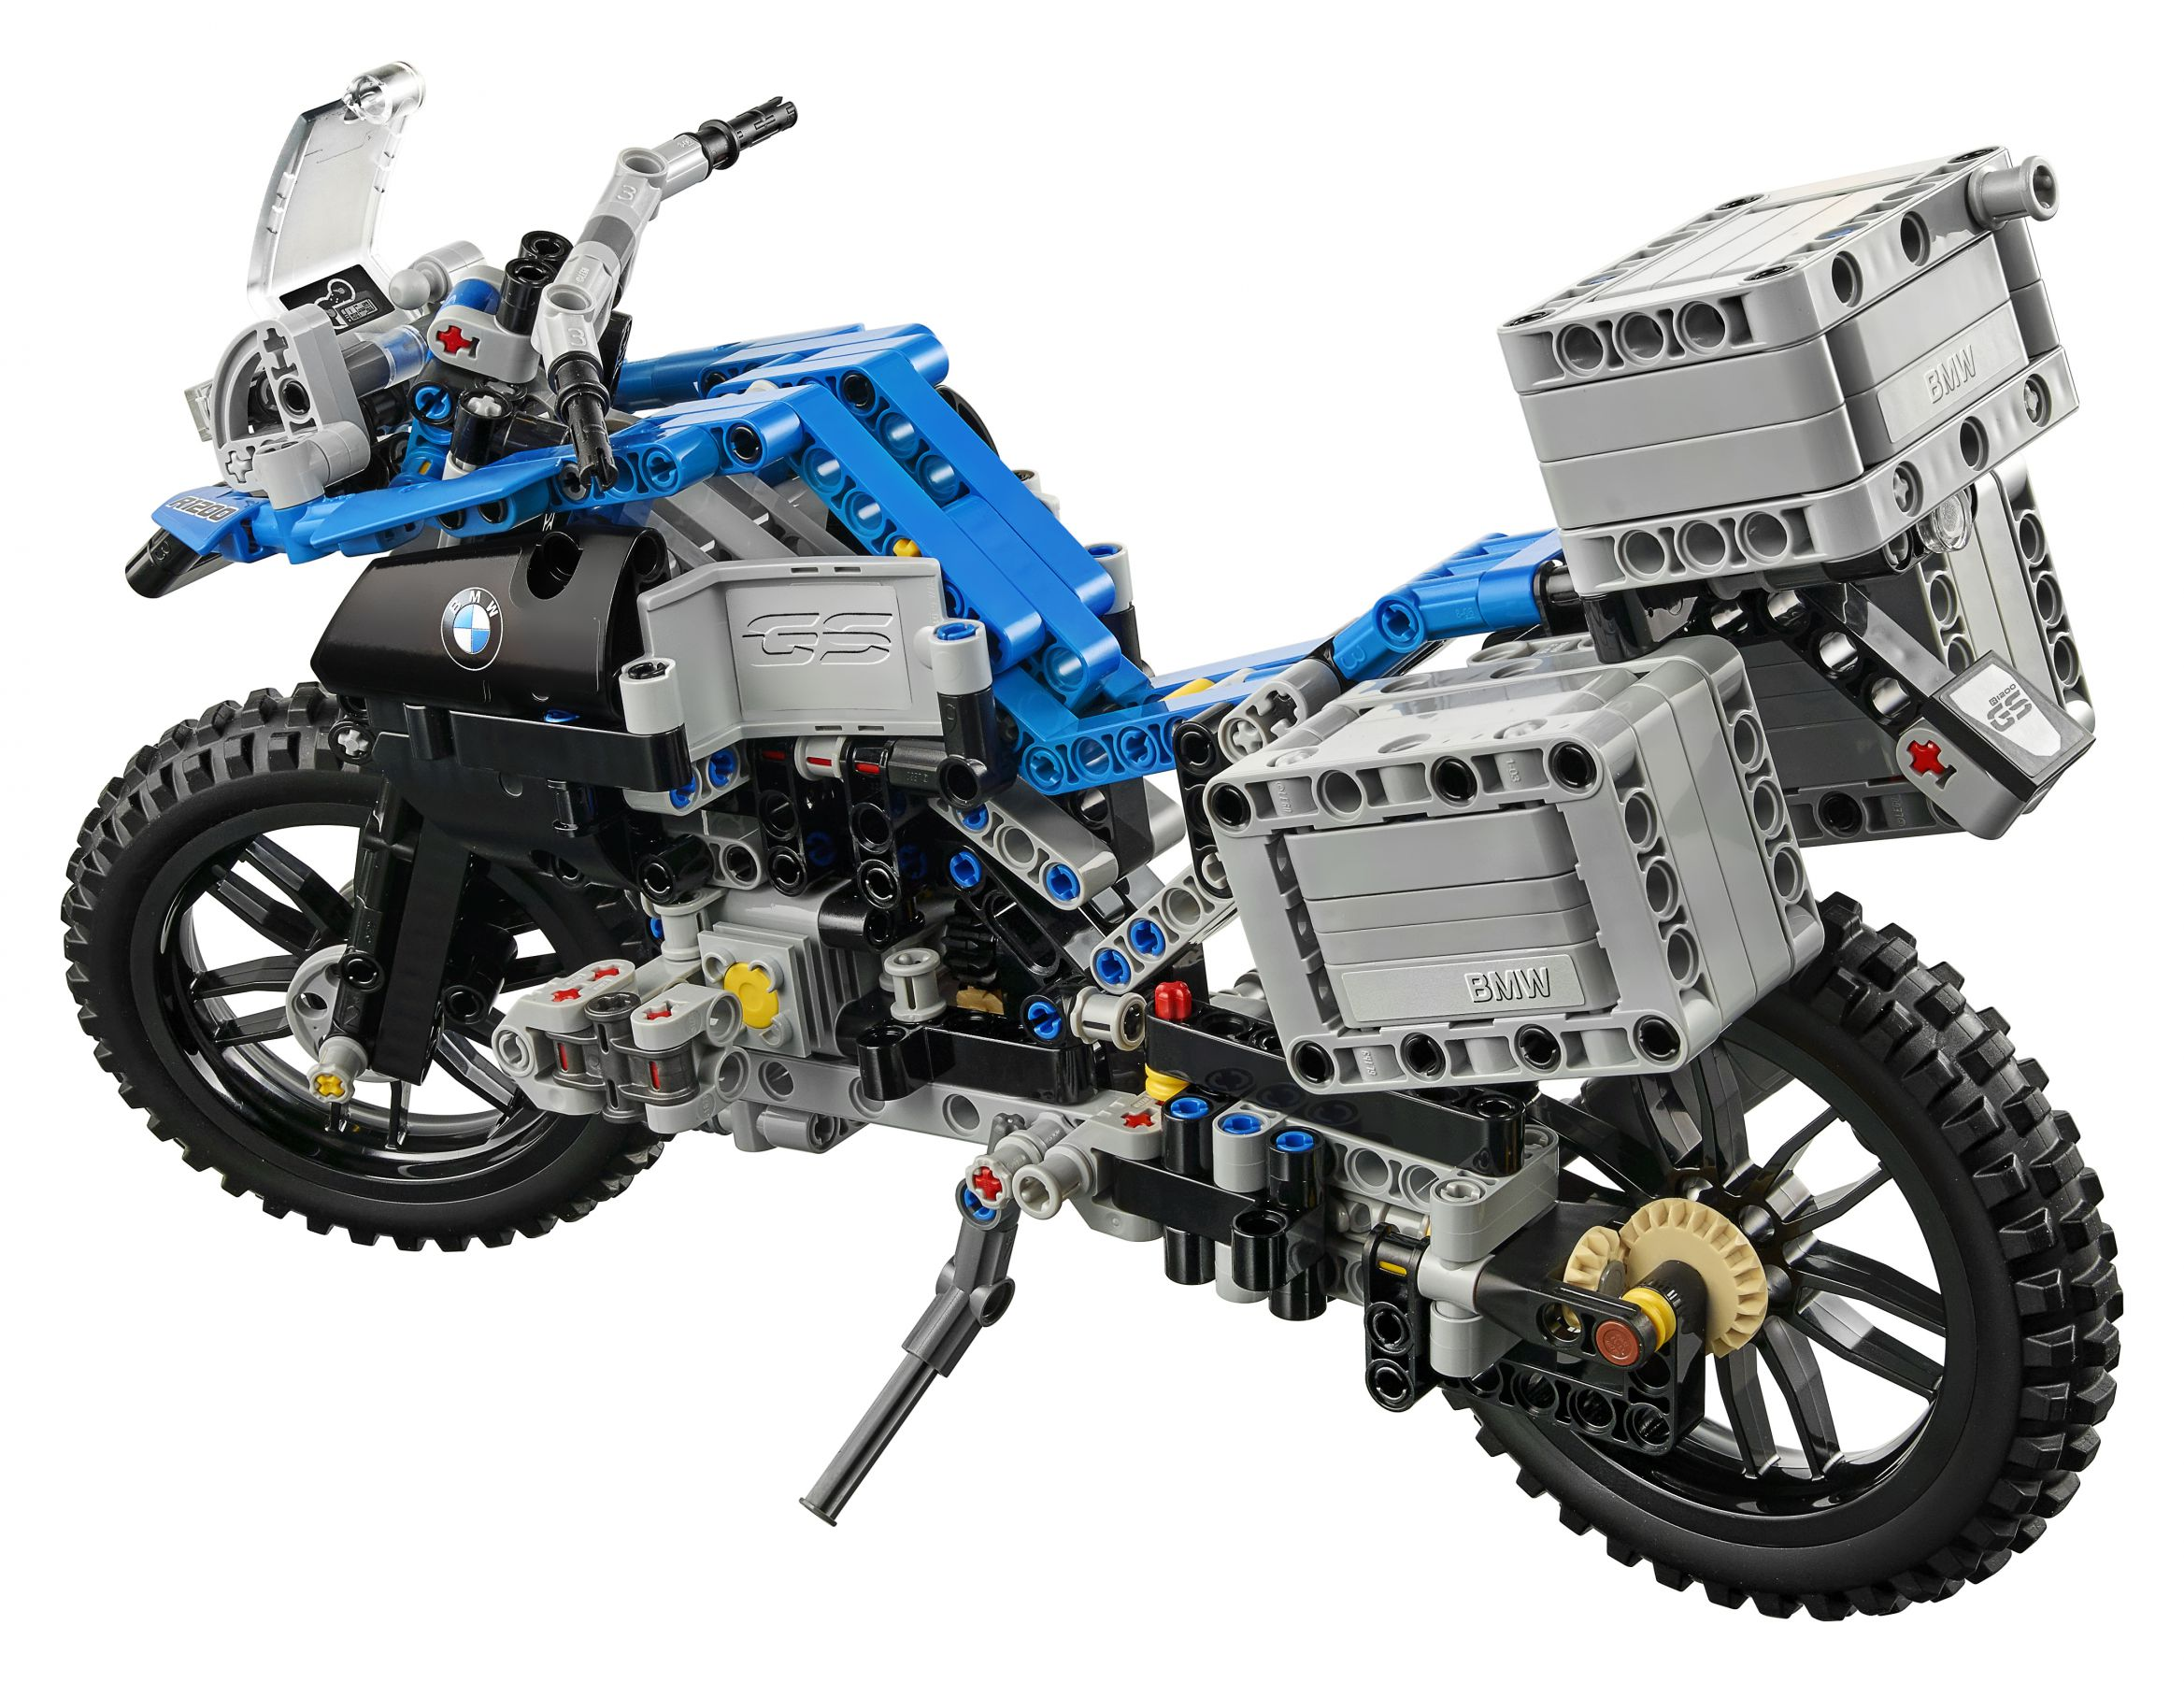 LEGO Technic 42063 BMW R 1200 GS Adventure LEGO_42063_bmw-R-1200-GS-Adventure_img4.jpg